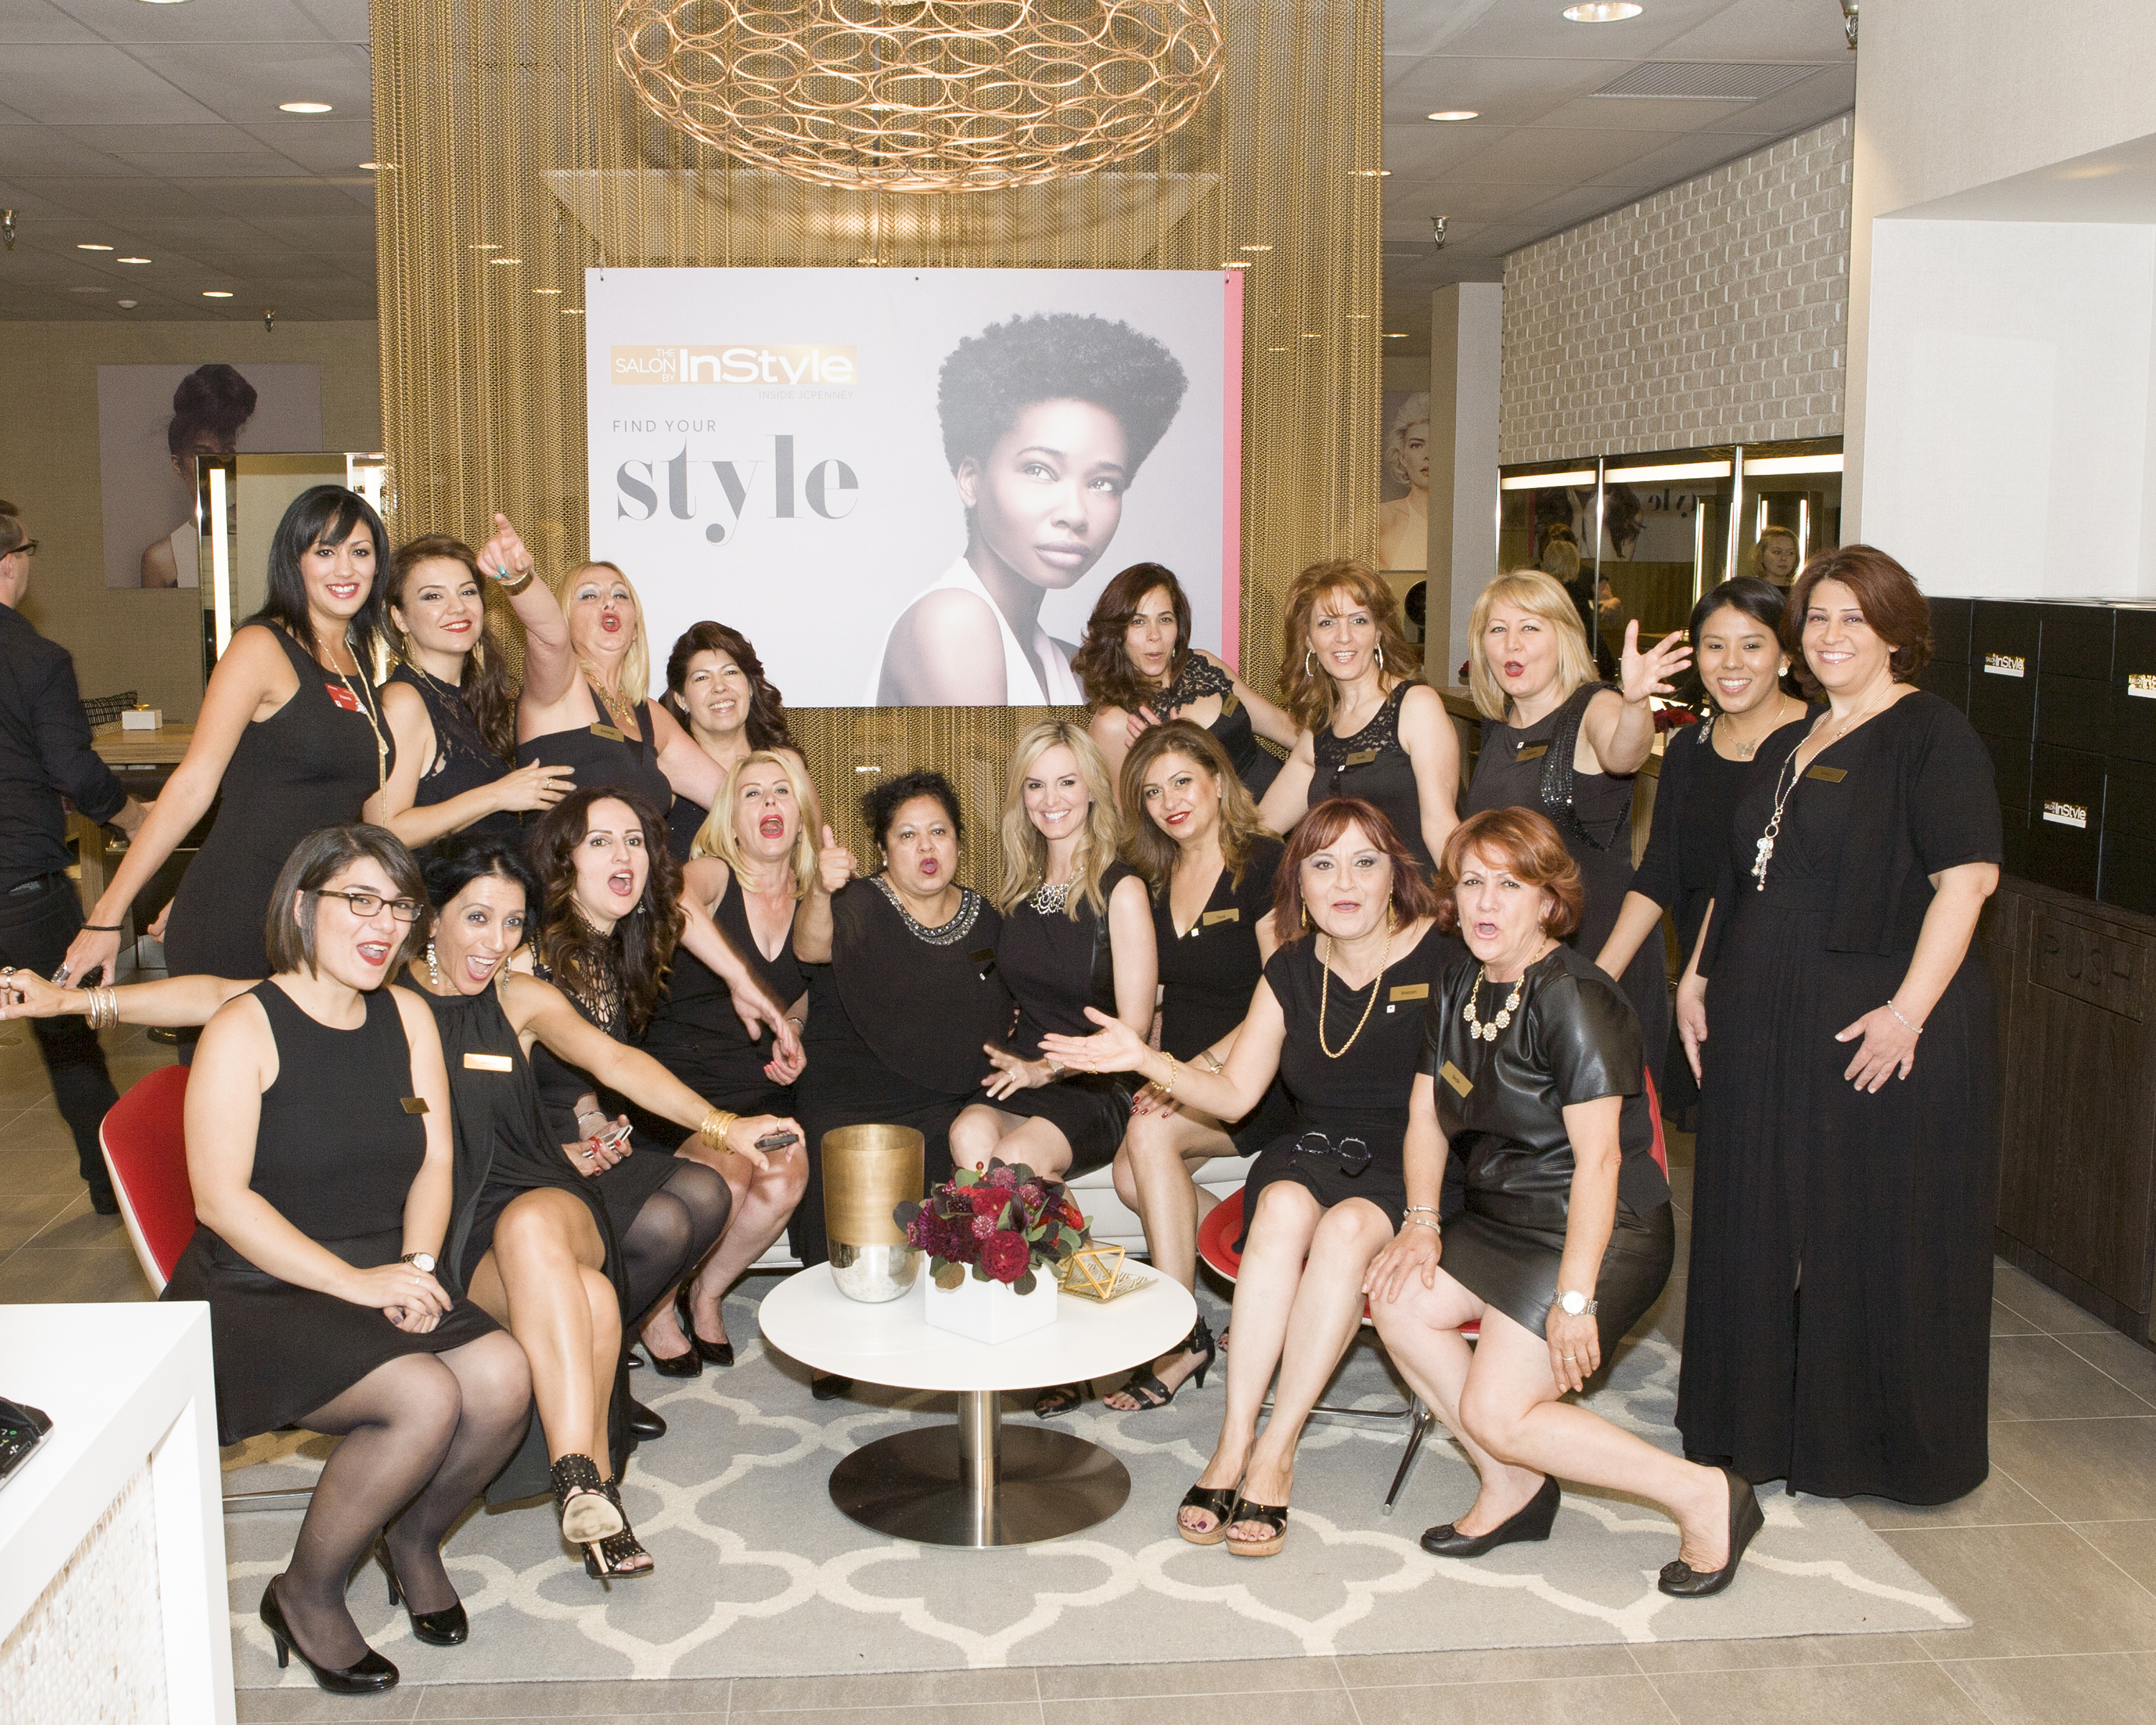 FIRST LOOK: The NEW Salon by InStyle Inside JCPenney